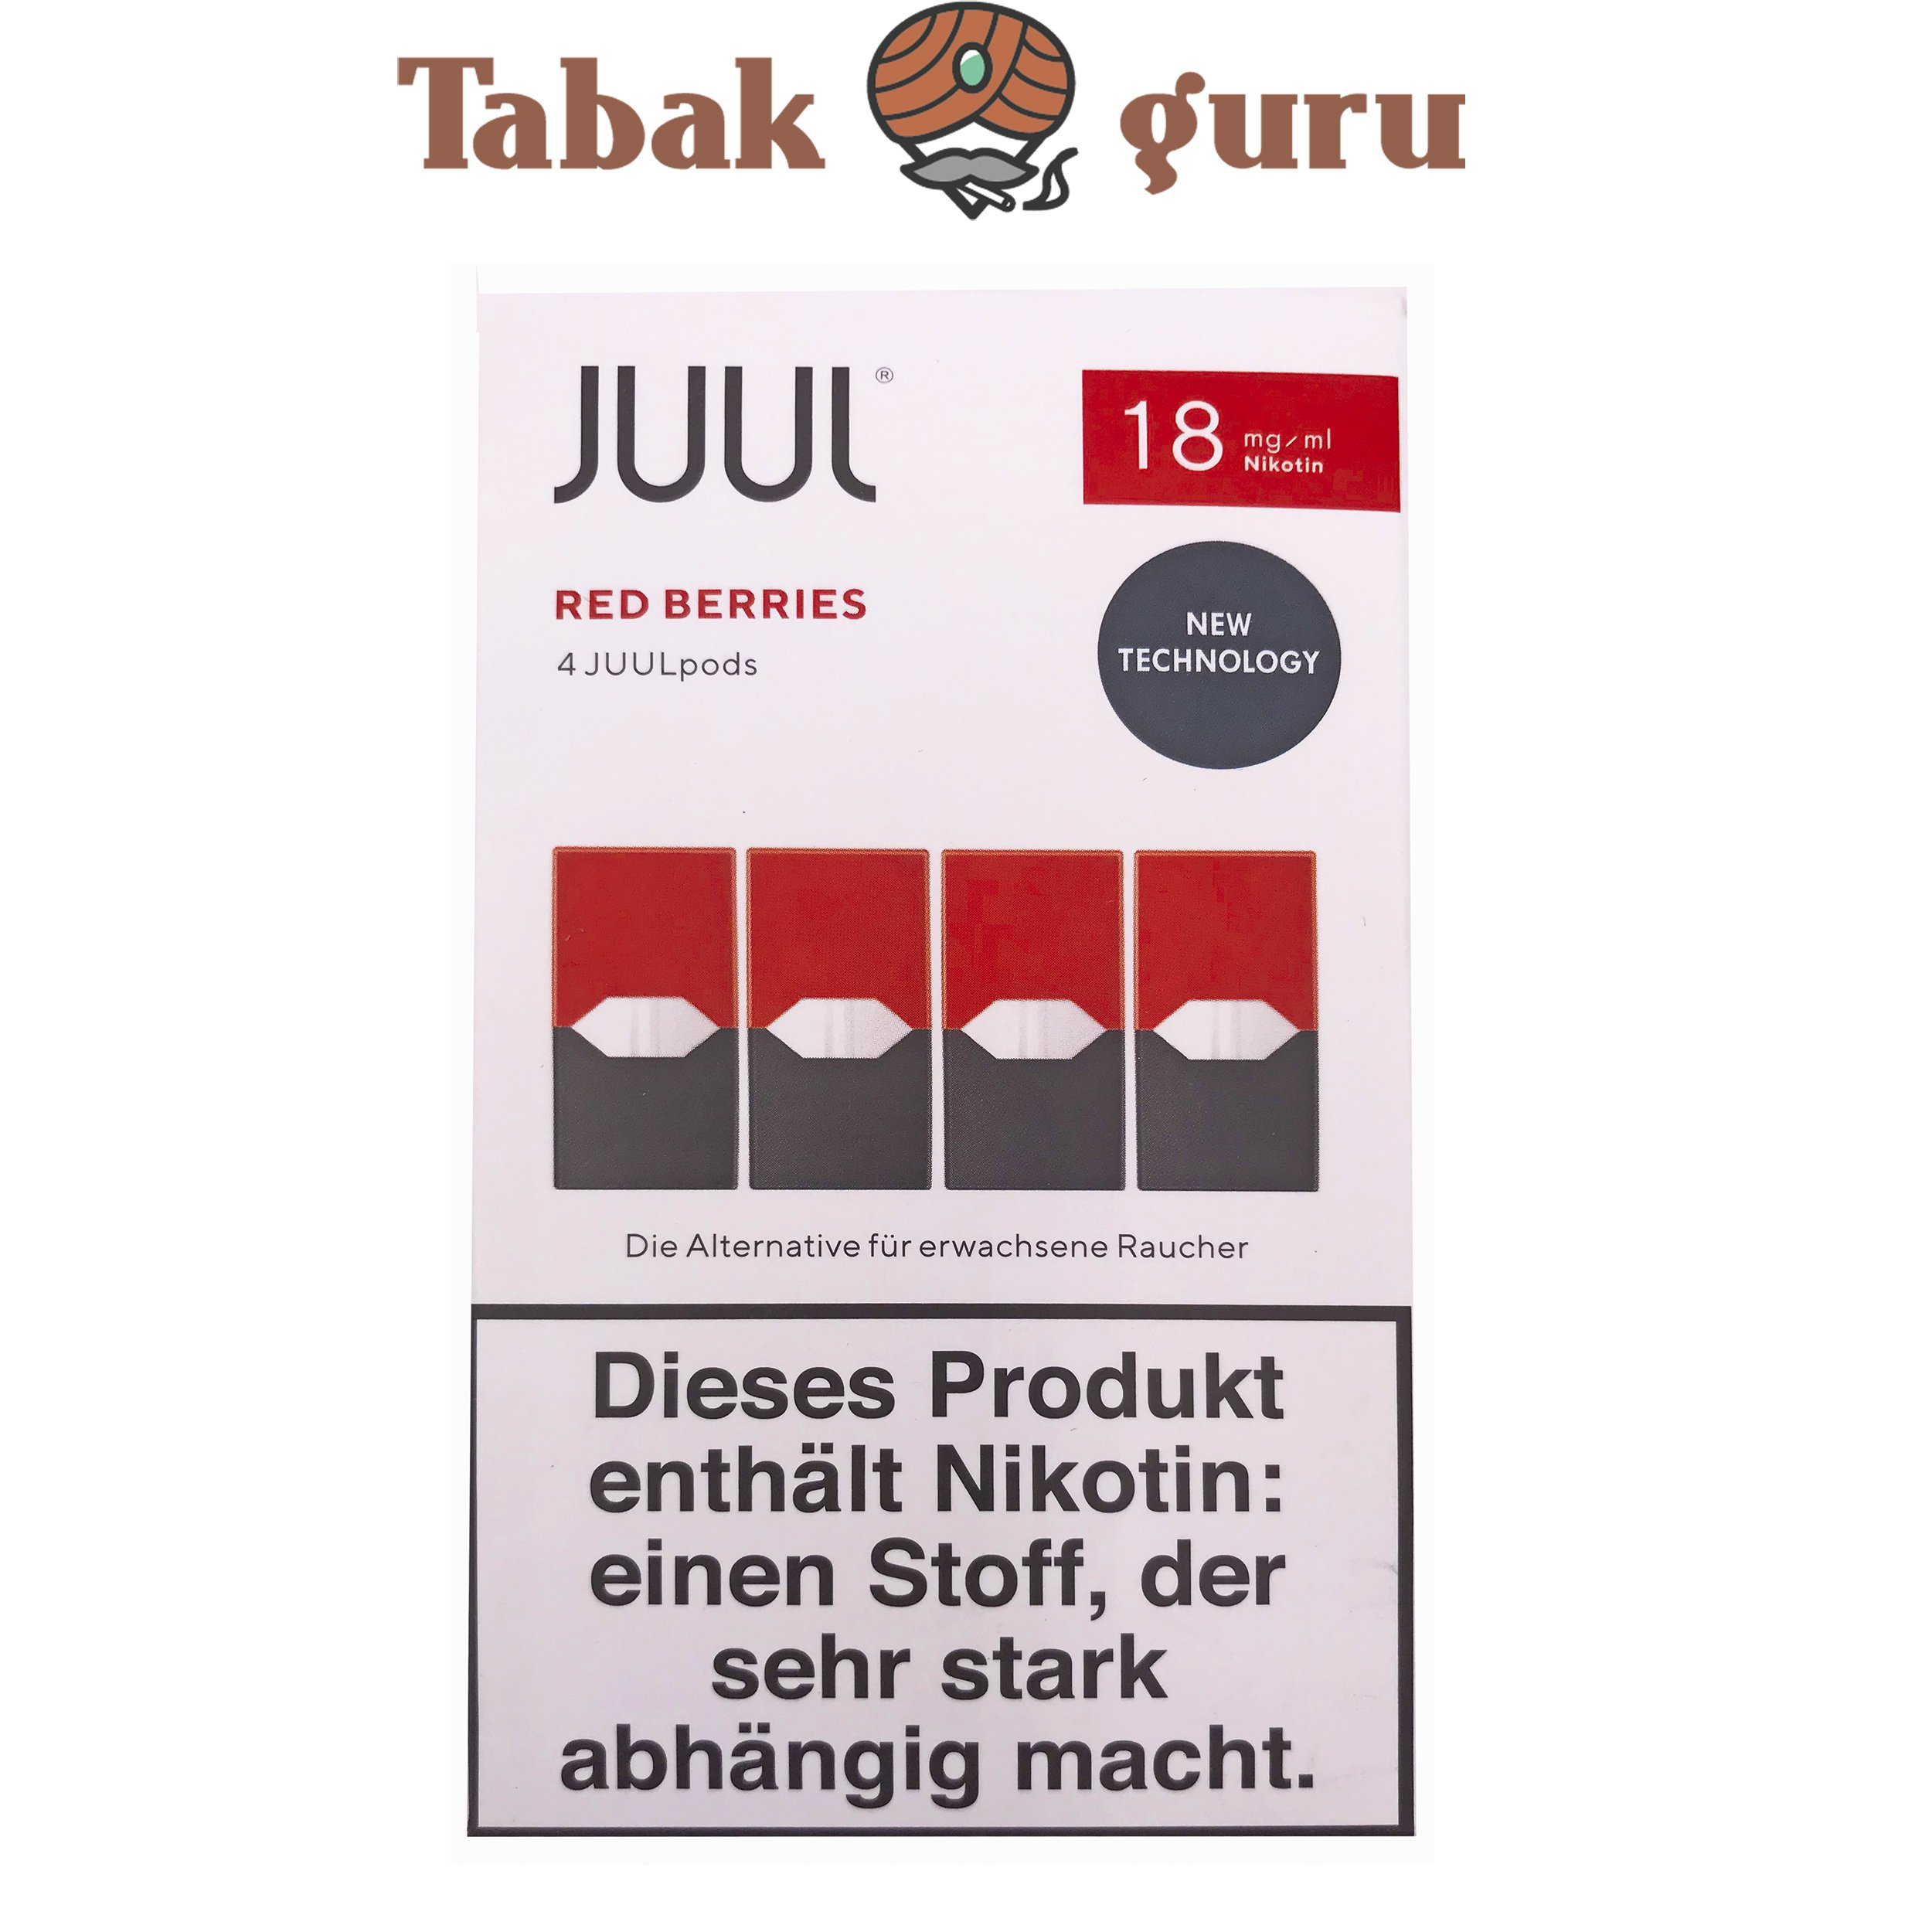 JUUL 6 Packungen Red Berries Pods 18mg/ml á 4 Pods